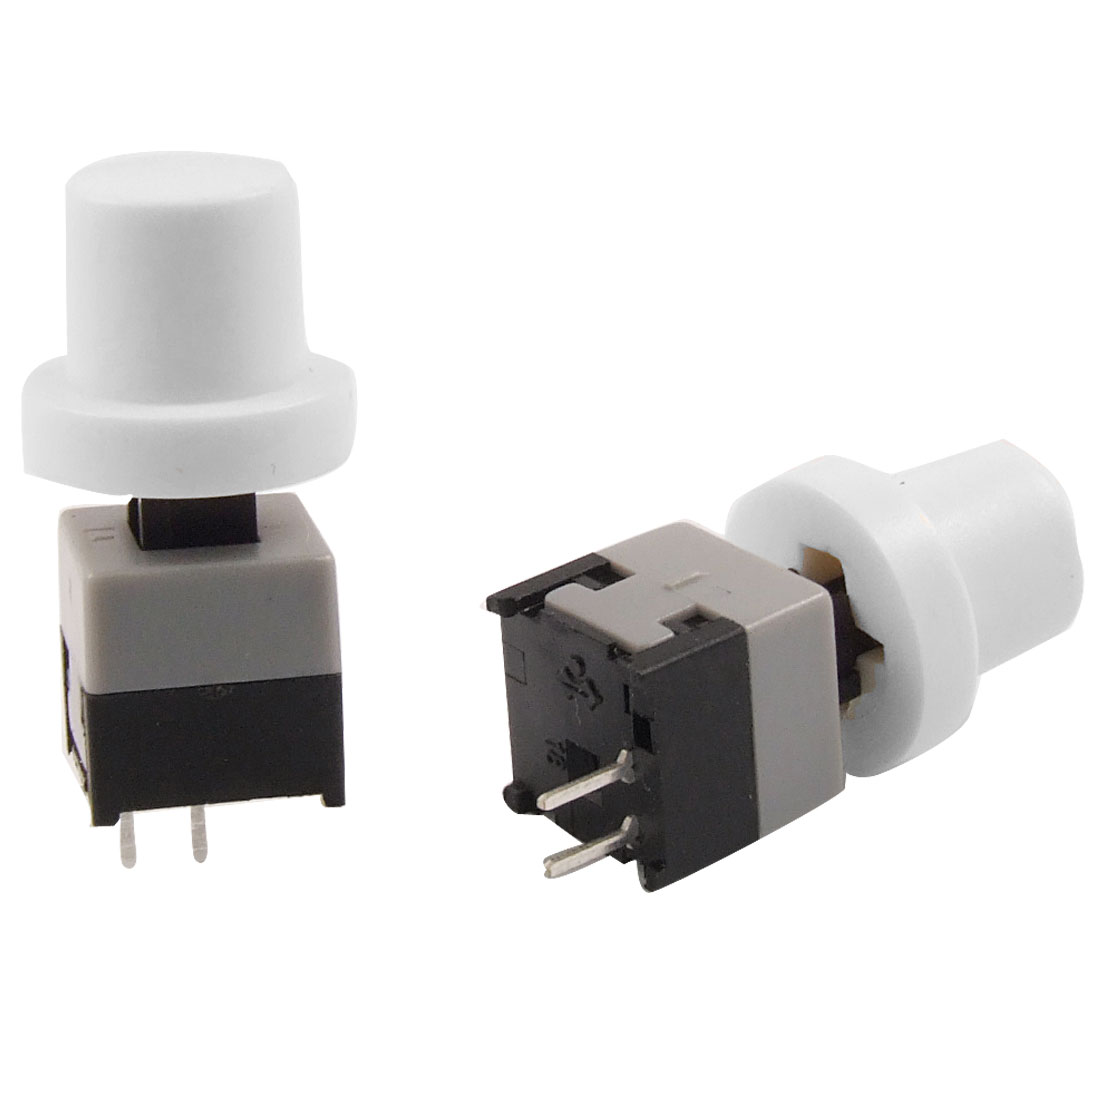 20 Pcs 2 Terminals DIP White Cap Momentary Push Button Tact Tactile Switch 8.45 x 8.45mm